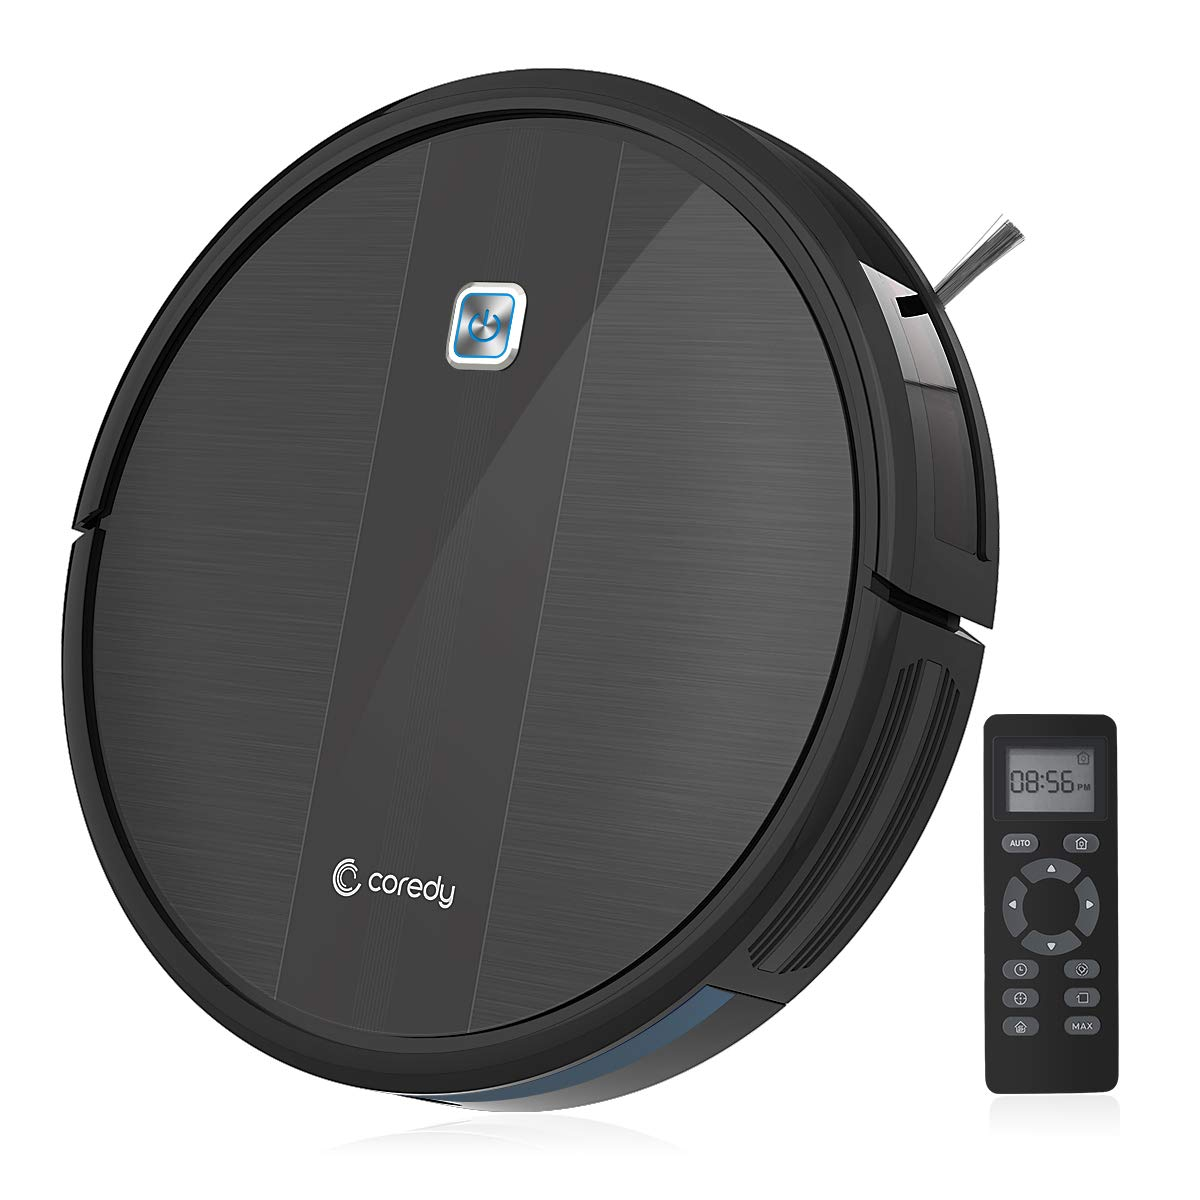 Coredy Robot Vacuum Cleaner, 1700Pa Strong Suction, Super Thin Robotic Vacuum, Multiple Cleaning Modes/Automatic Self-Charging Robot Vacuum for Pet Hair, Hard Floor to Medium-Pile Carpets by Coredy